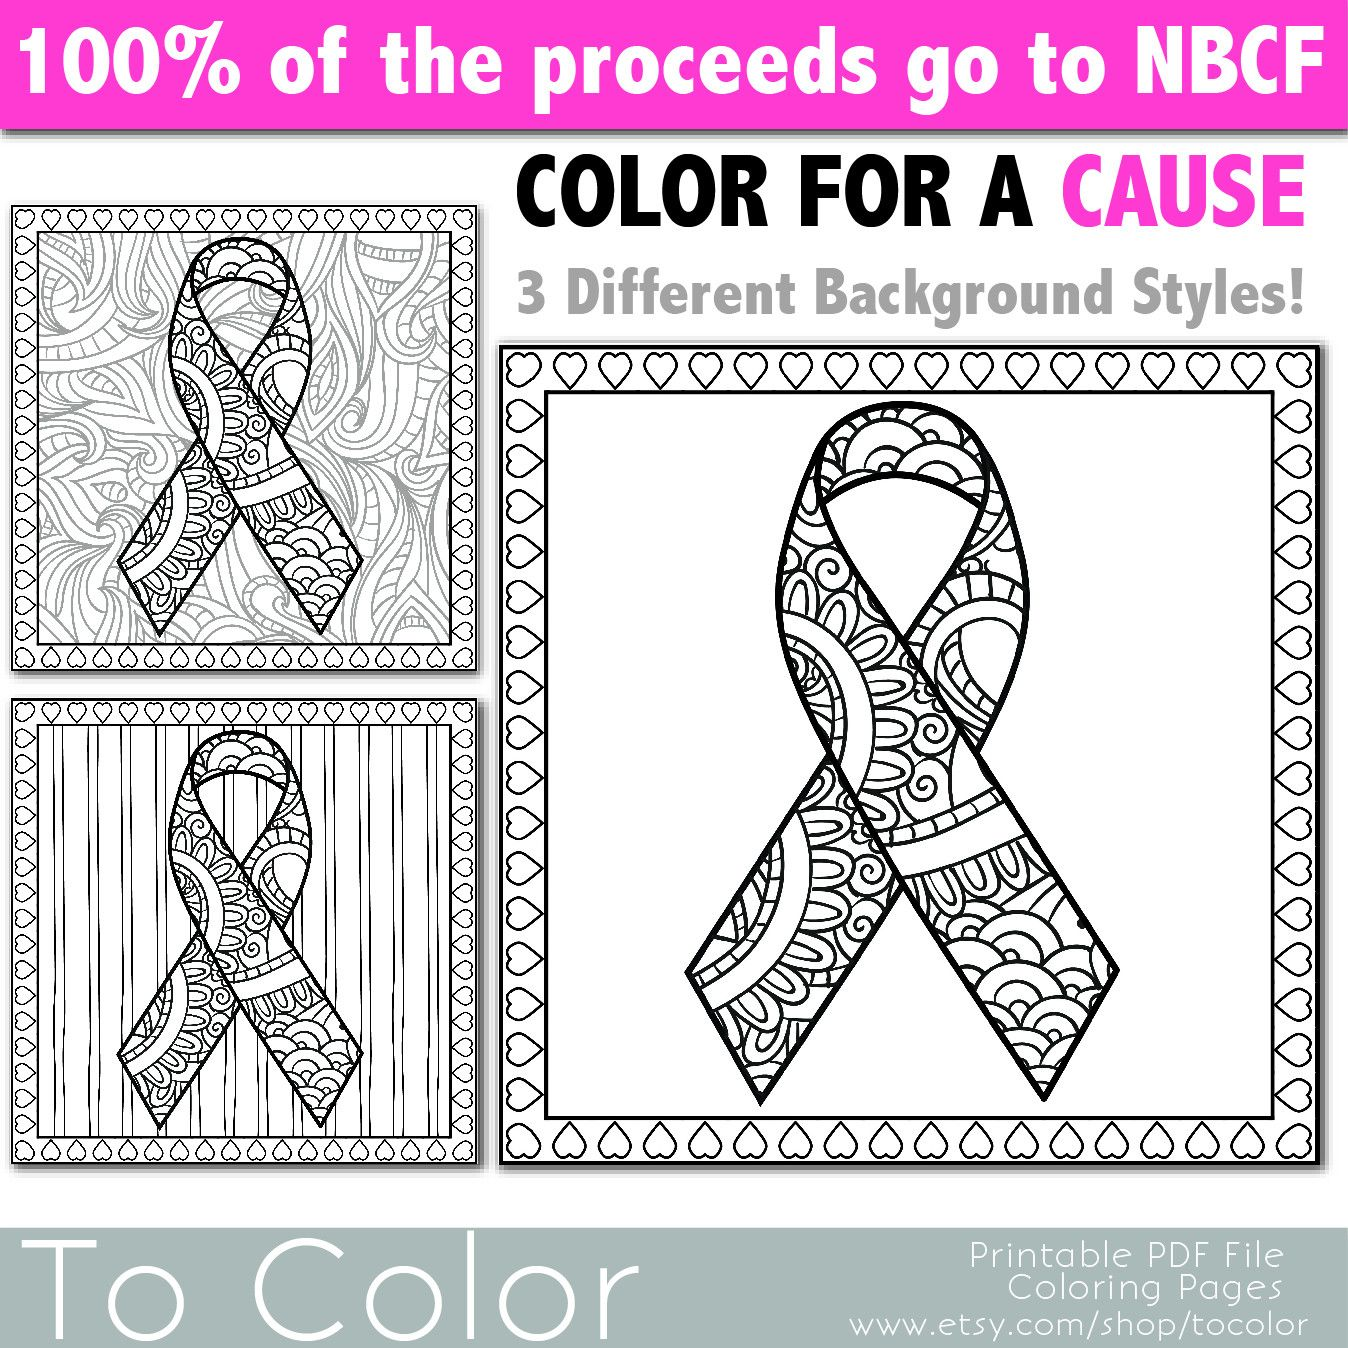 this is a special awareness ribbon coloring page to support the